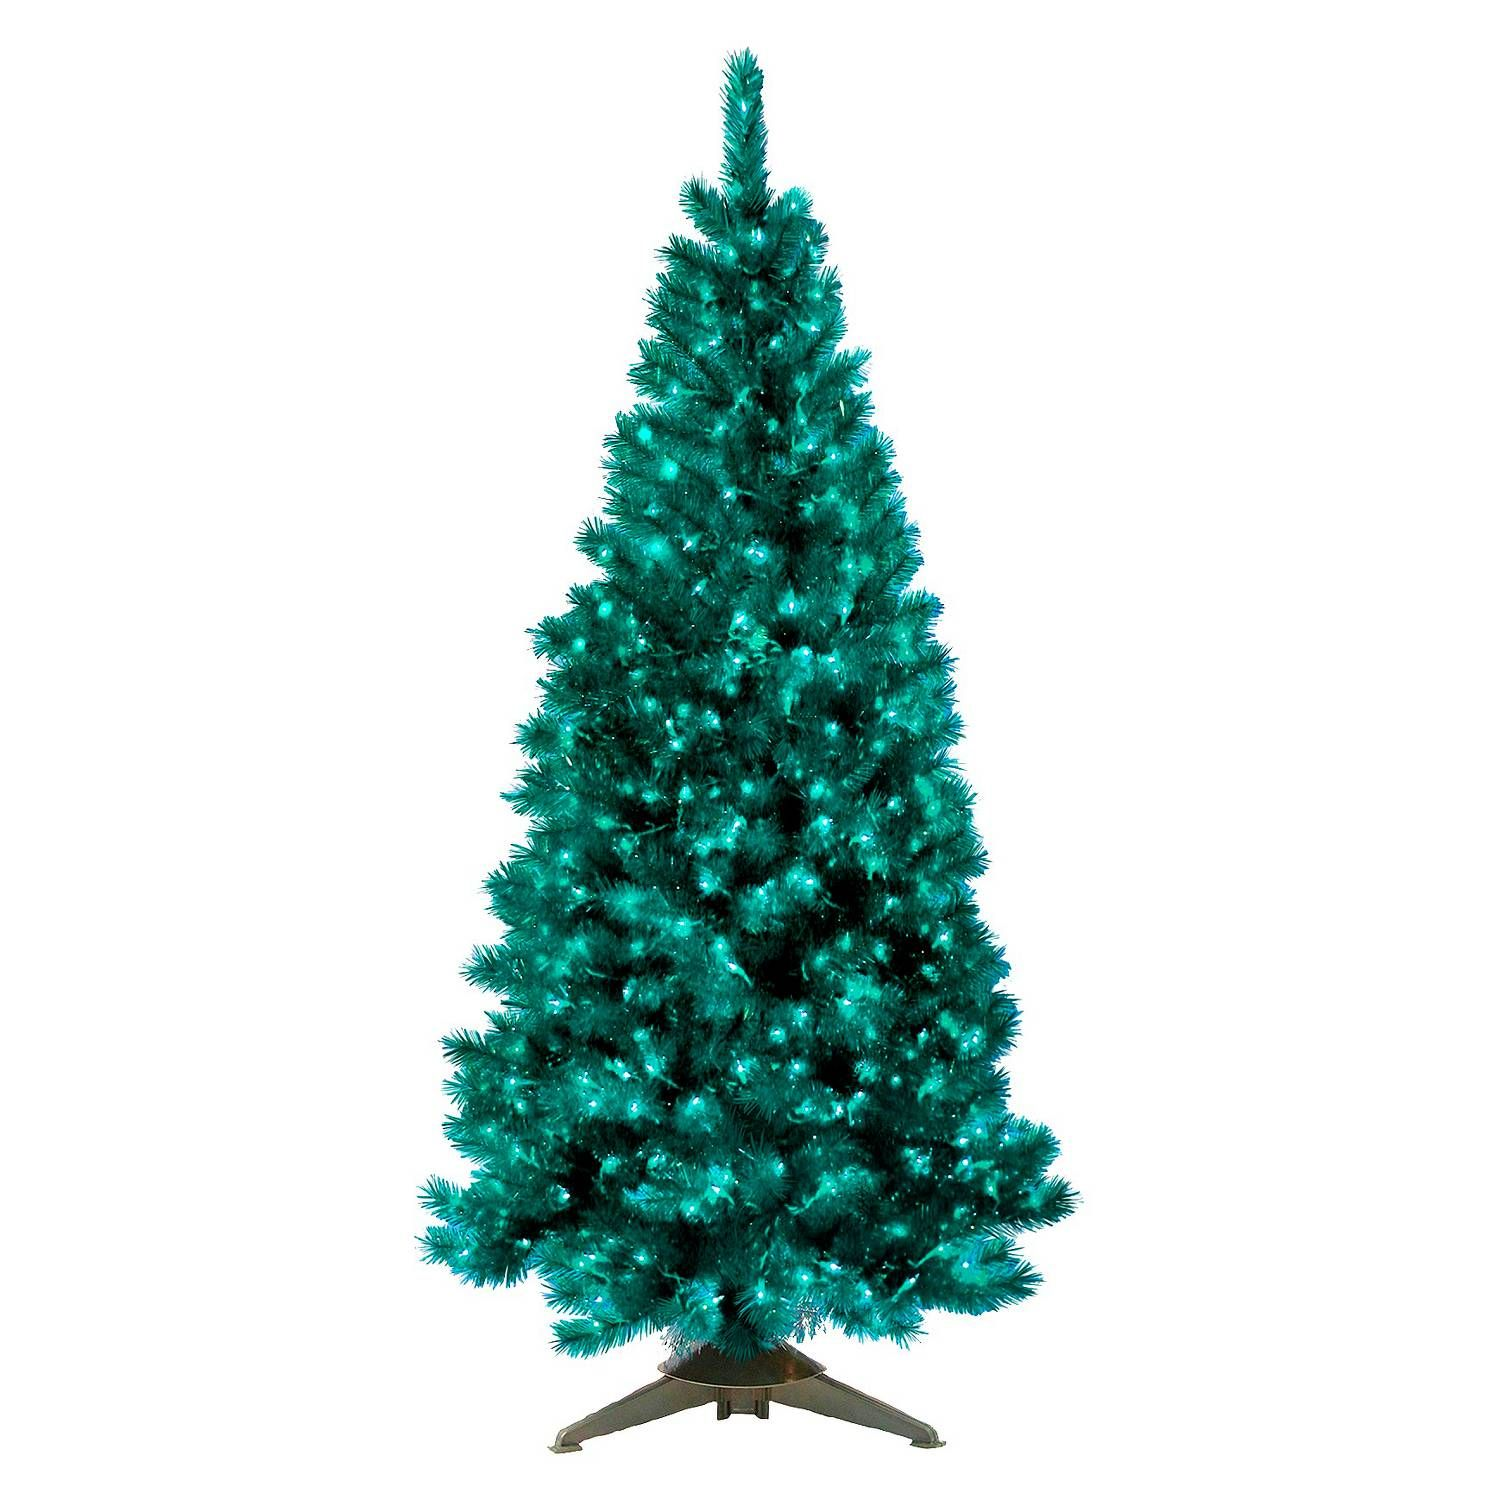 9 Best Blue Christmas Trees - Blue-Colored Artificial Christmas Trees